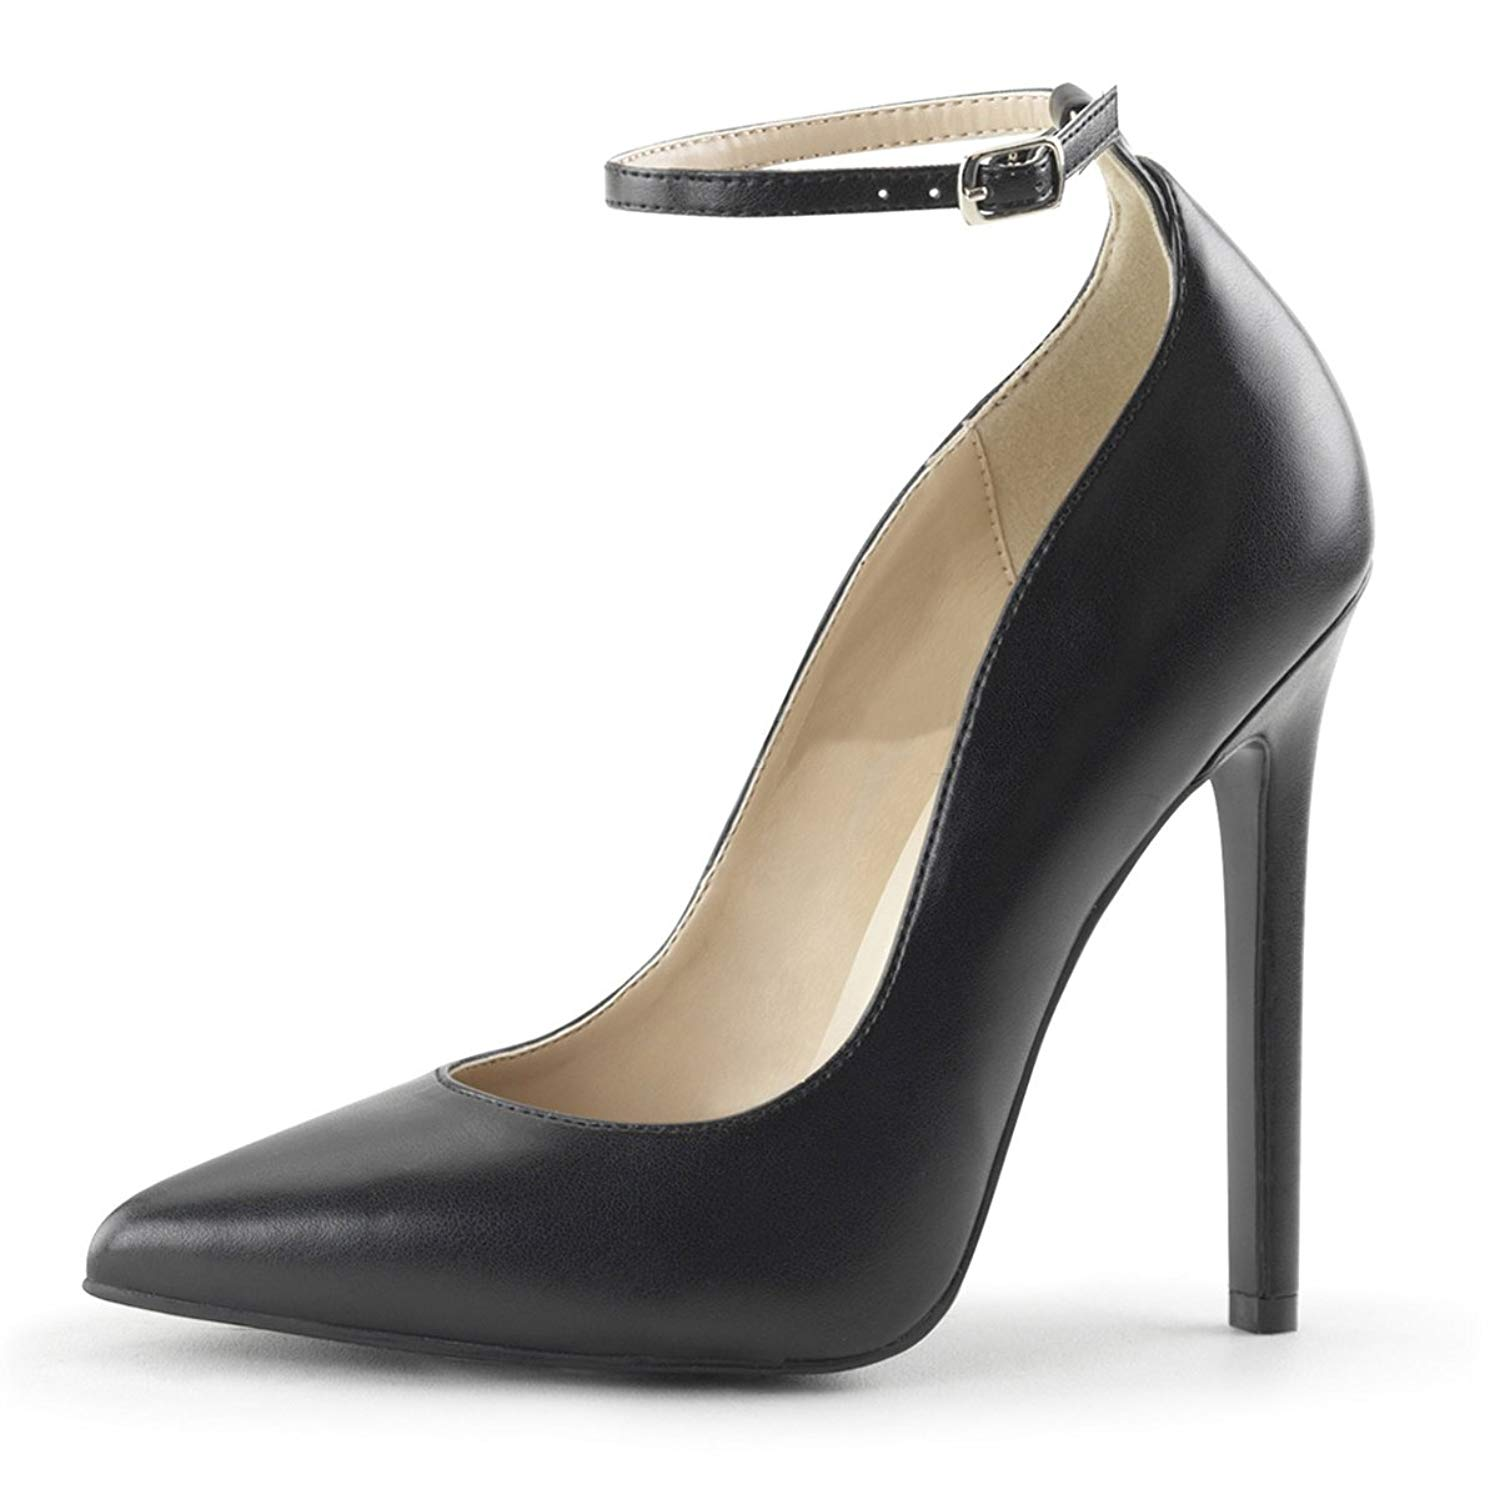 41fb56ee76c Get Quotations · Summitfashions Womens Black Ankle Strap Heels Pointed Toe  Pumps Stiletto 5 inch Heels Shoes